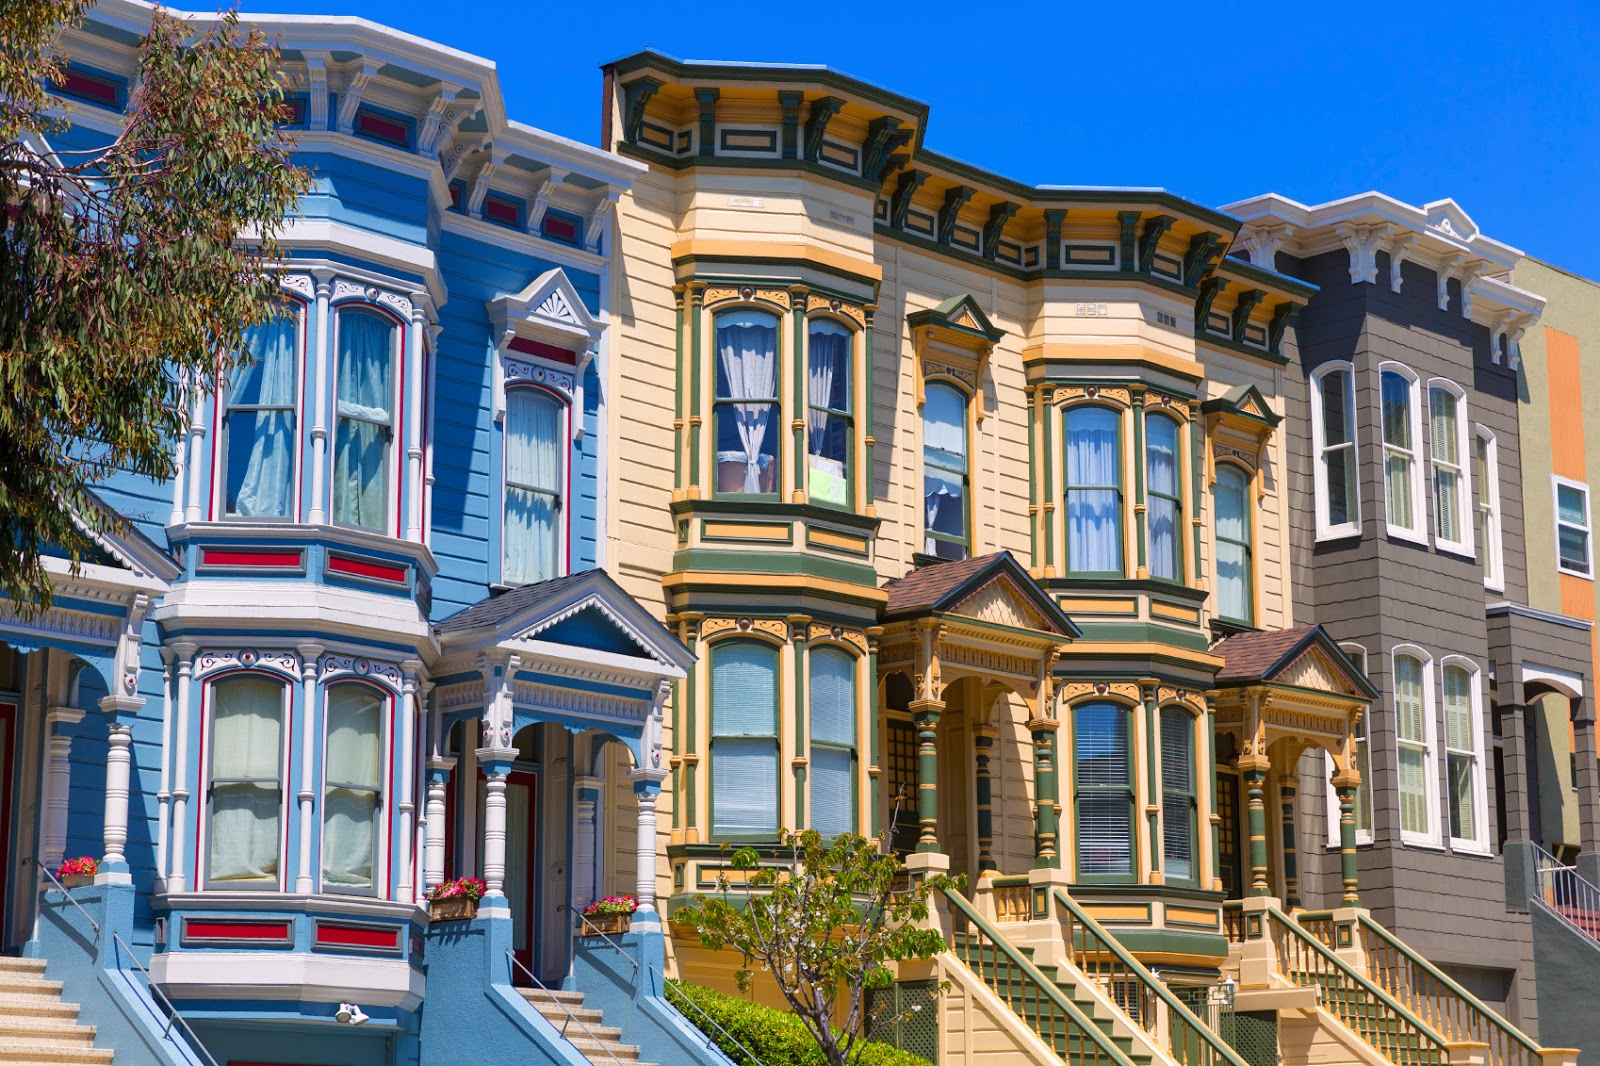 Rental Cost Take A Look At The City By The Bay San Francisco